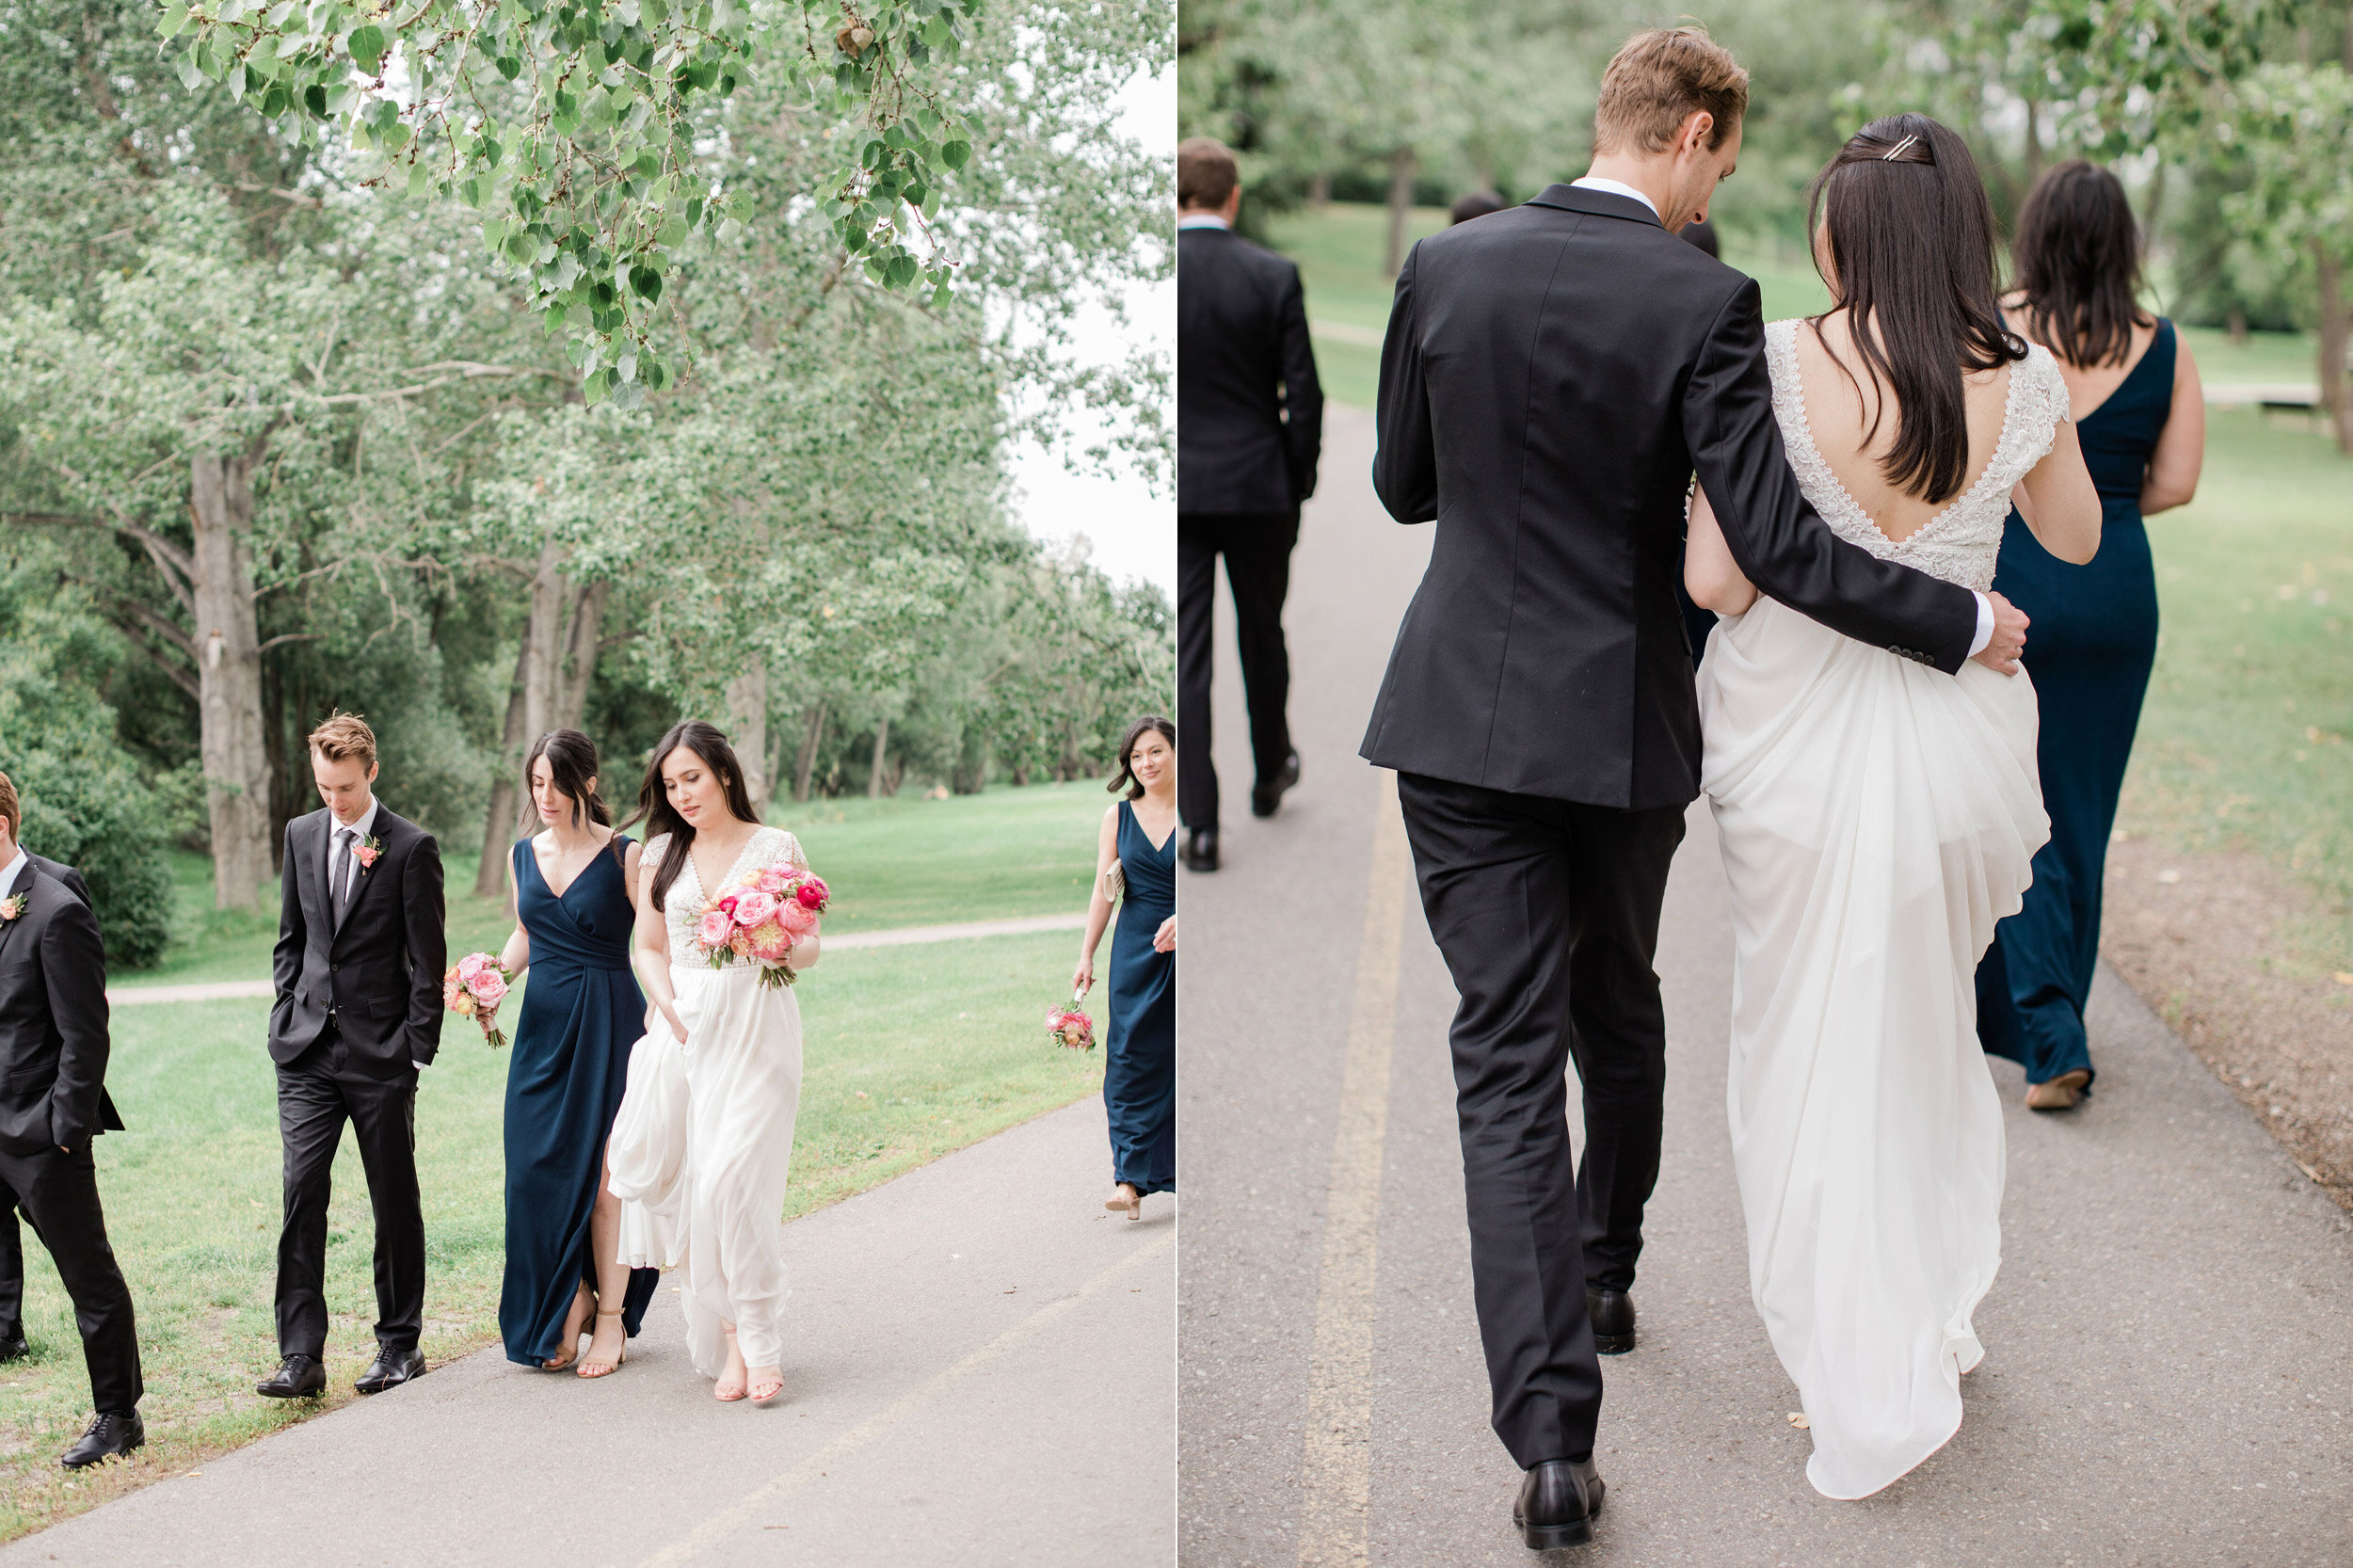 009-Calgary_Wedding_Photographer.jpg